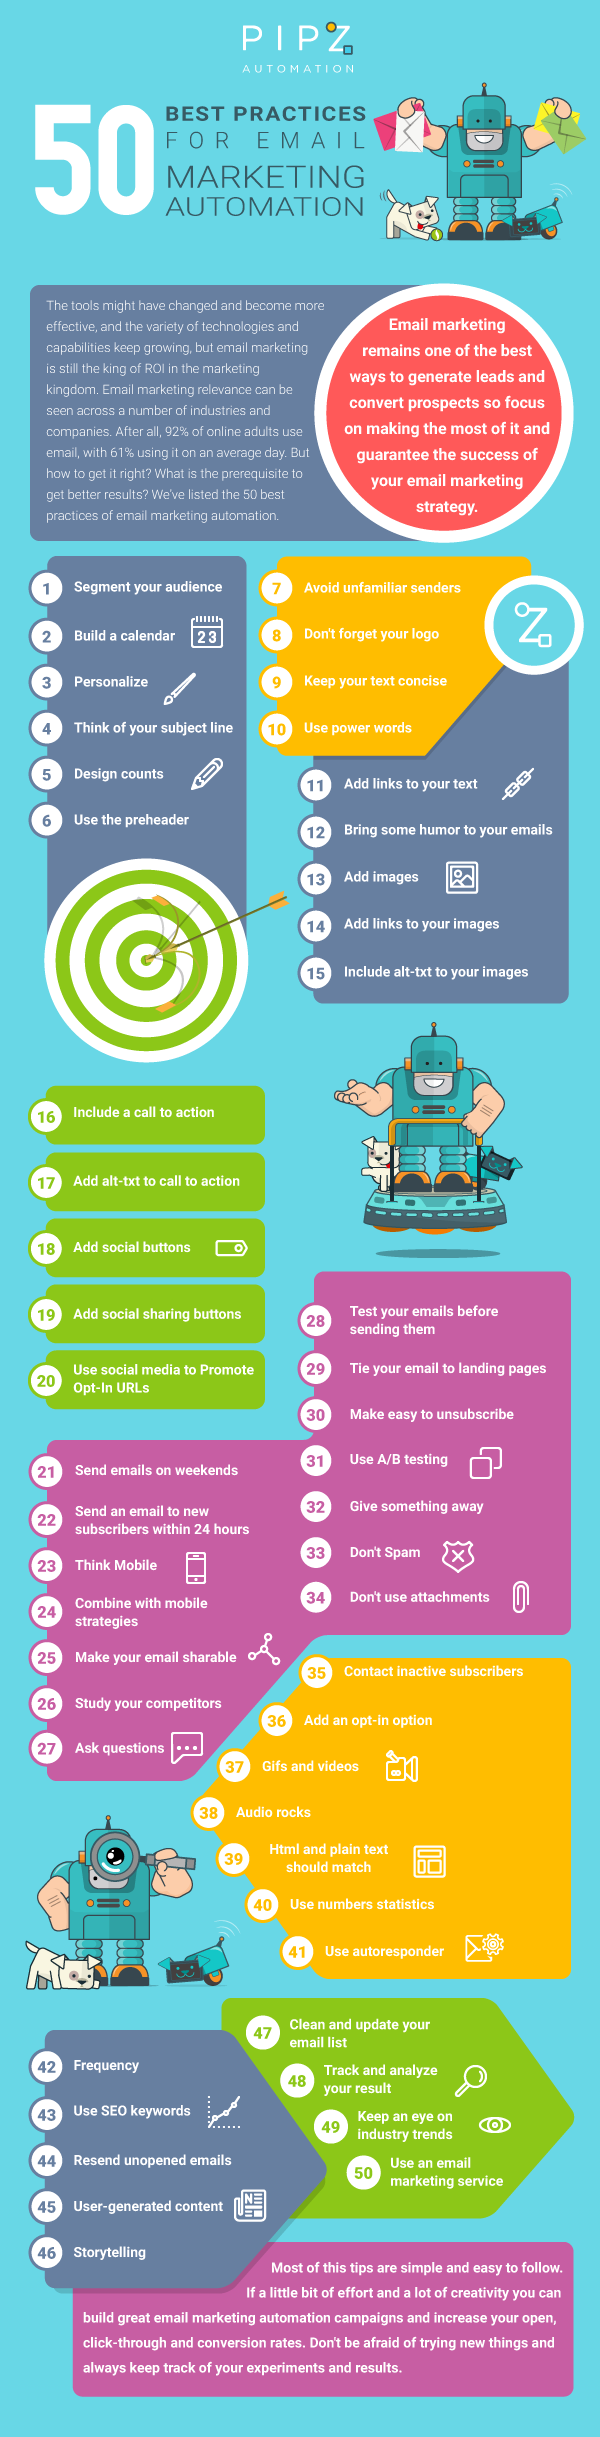 50 best practices for email marketing automation